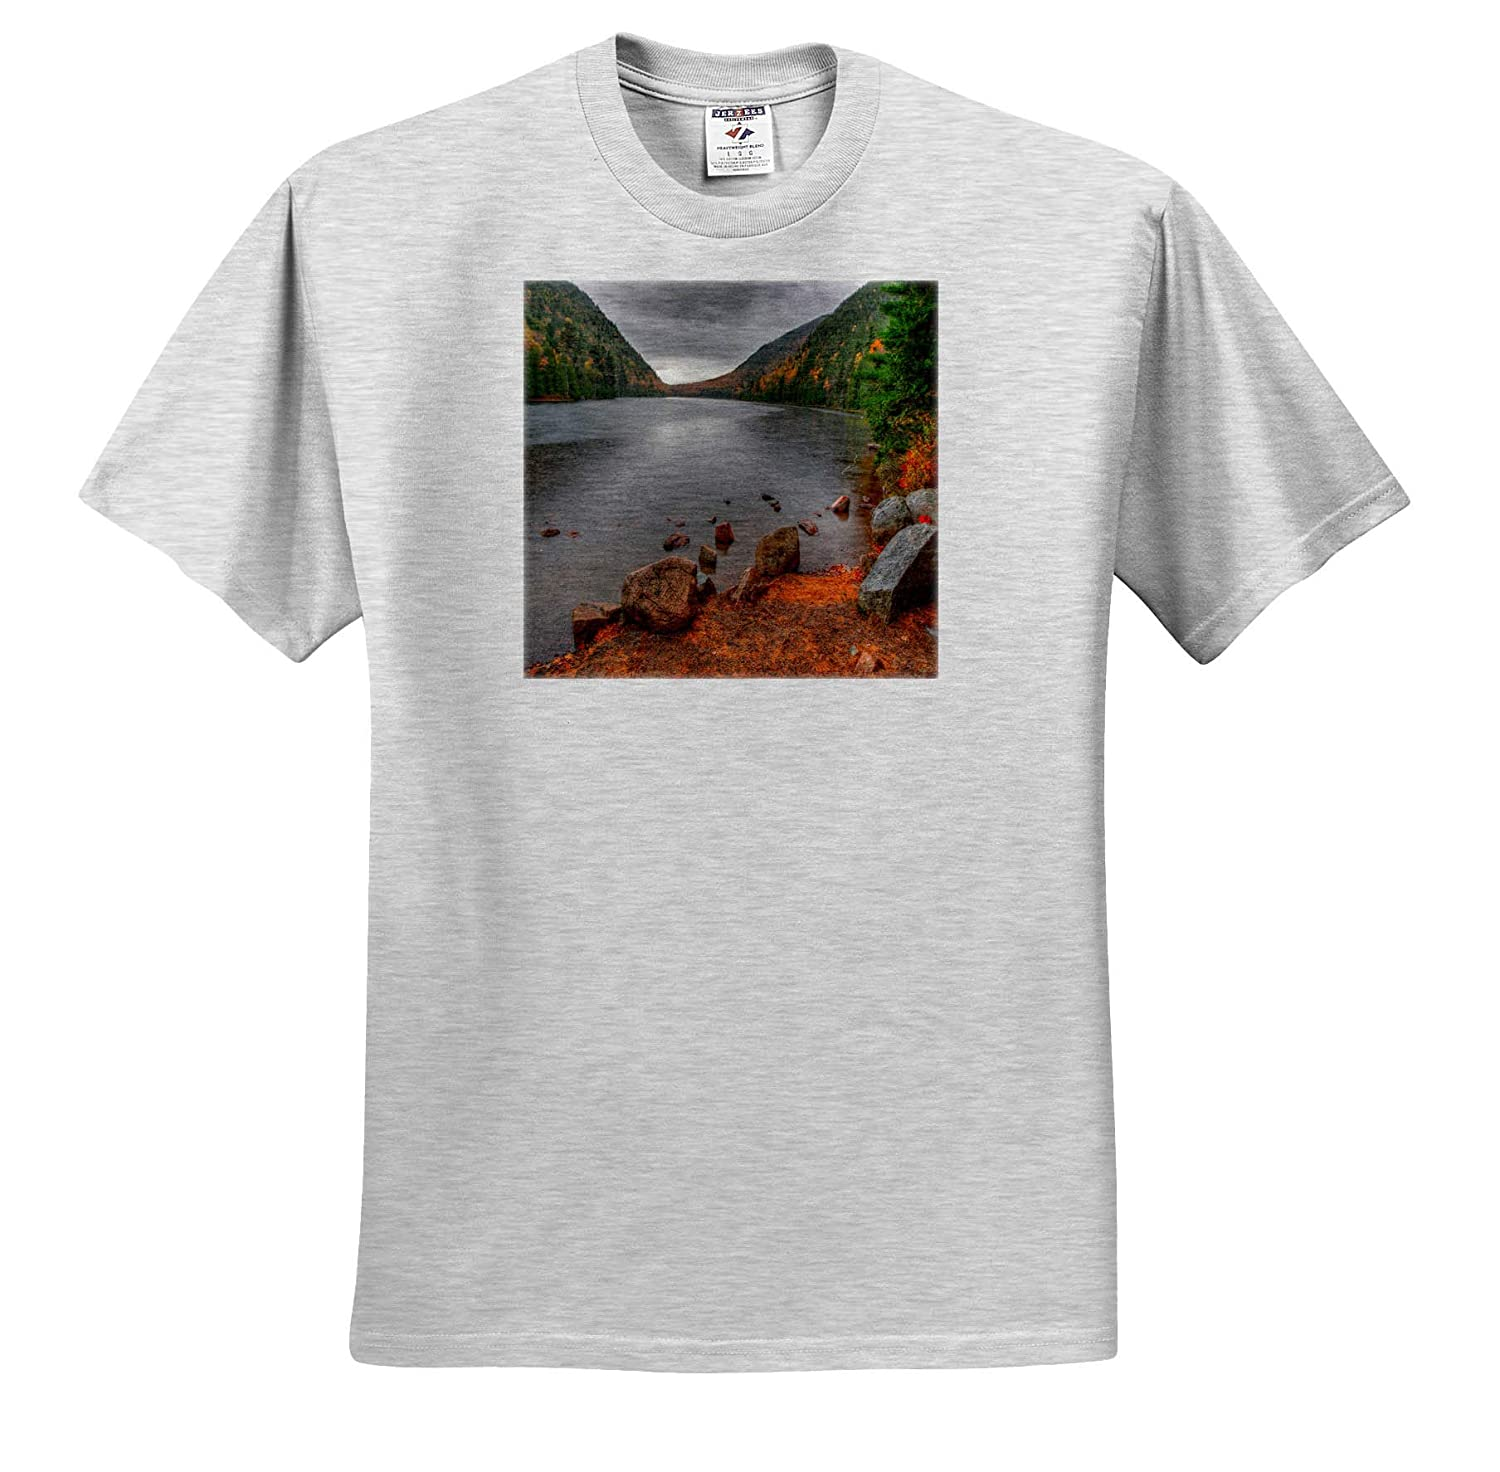 Cloudy Skies Over Lake Adult T-Shirt XL Landscapes ts/_317146 3dRose Mike Swindle Photography